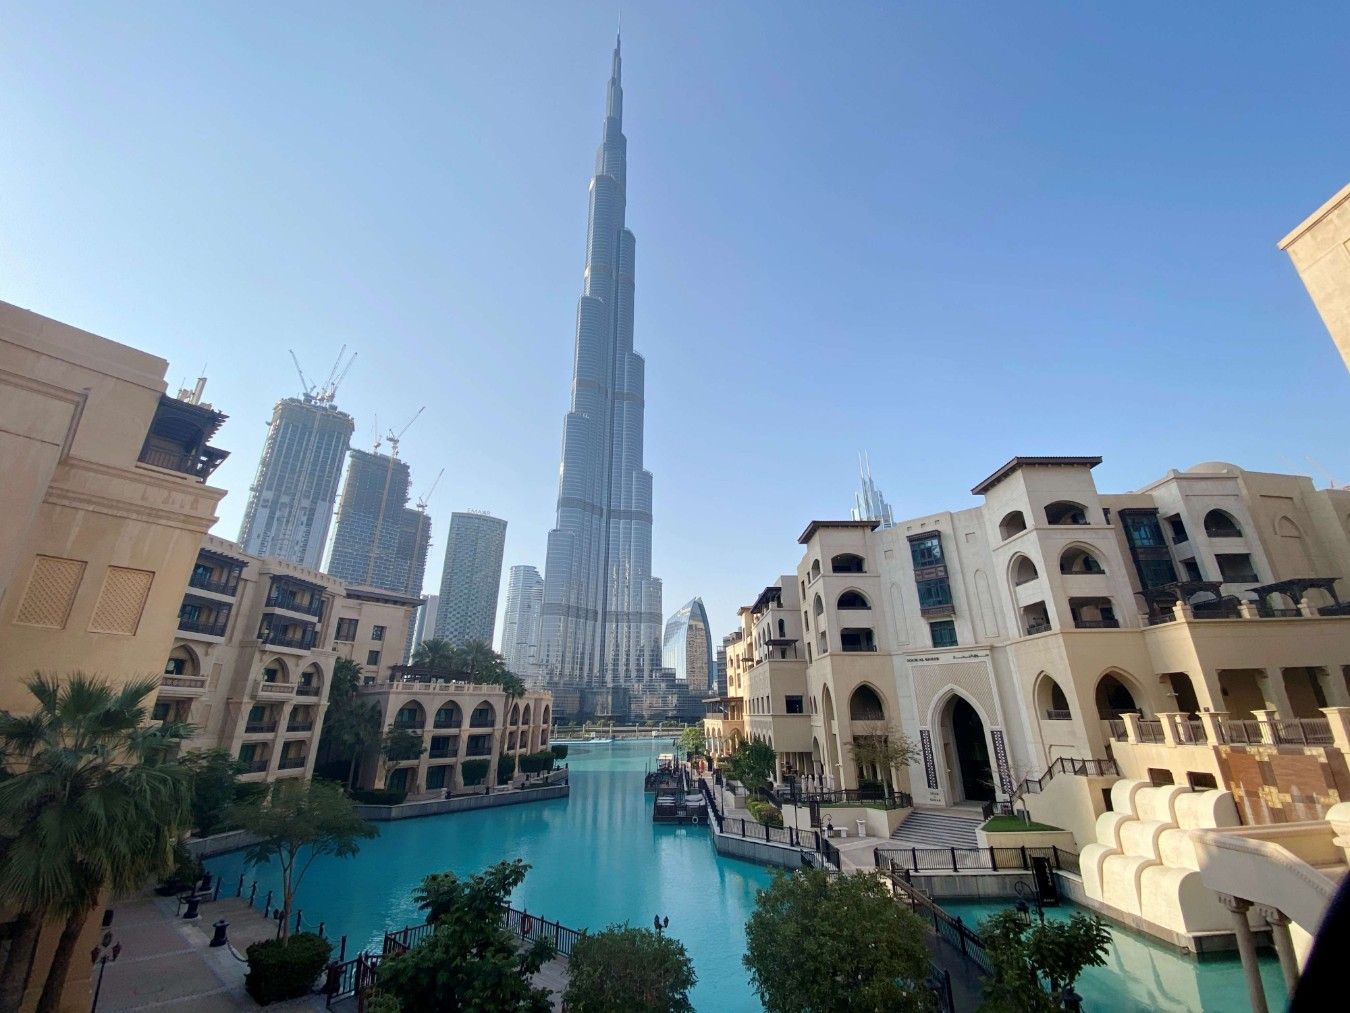 A view of the area outside the Burj Khalifa, the world's tallest building, mostly deserted, after a curfew was imposed to prevent the spread of the coronavirus disease, in Dubai, March 25. (Reuters)